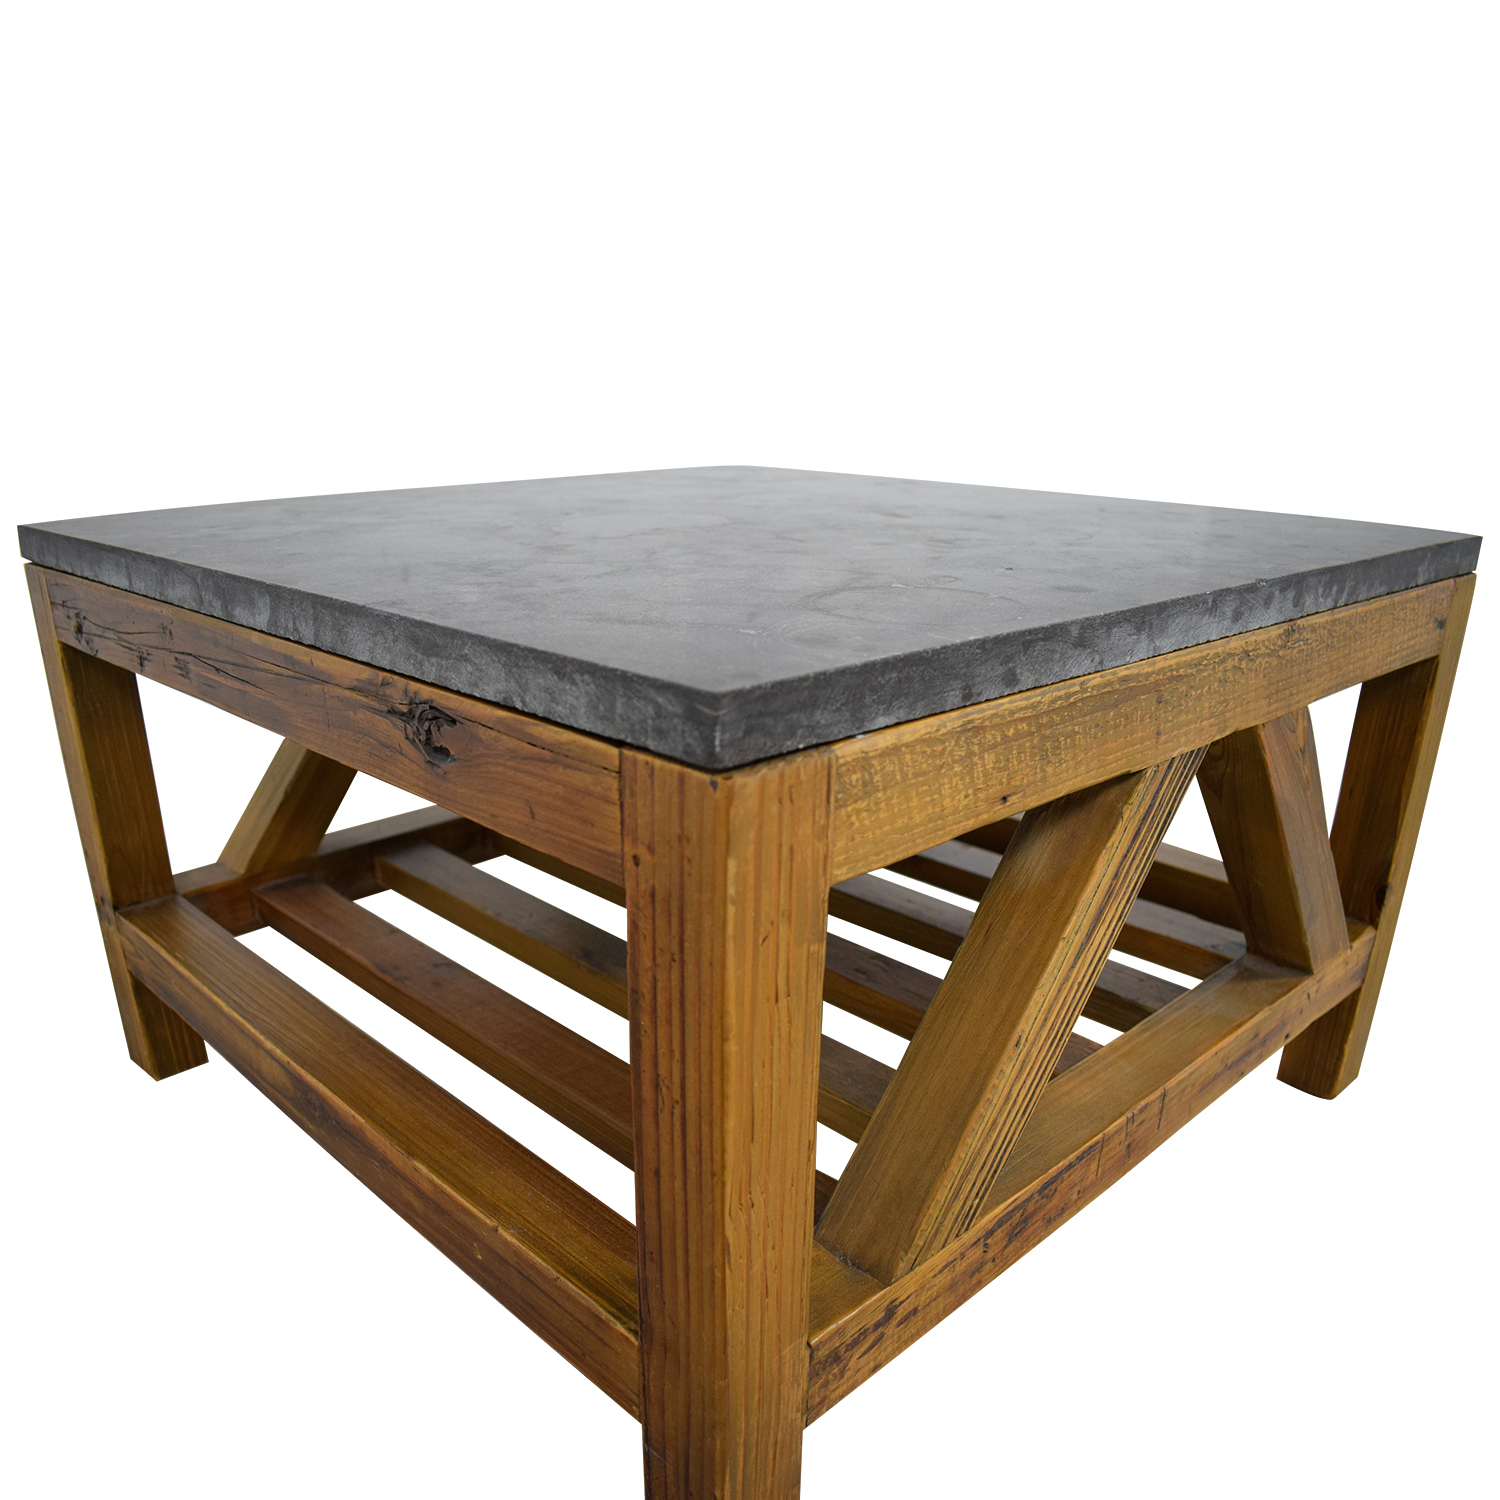 Crate And Barrel Black Marble Coffee Table: Crate & Barrel Crate & Barrel Coffee Table / Tables